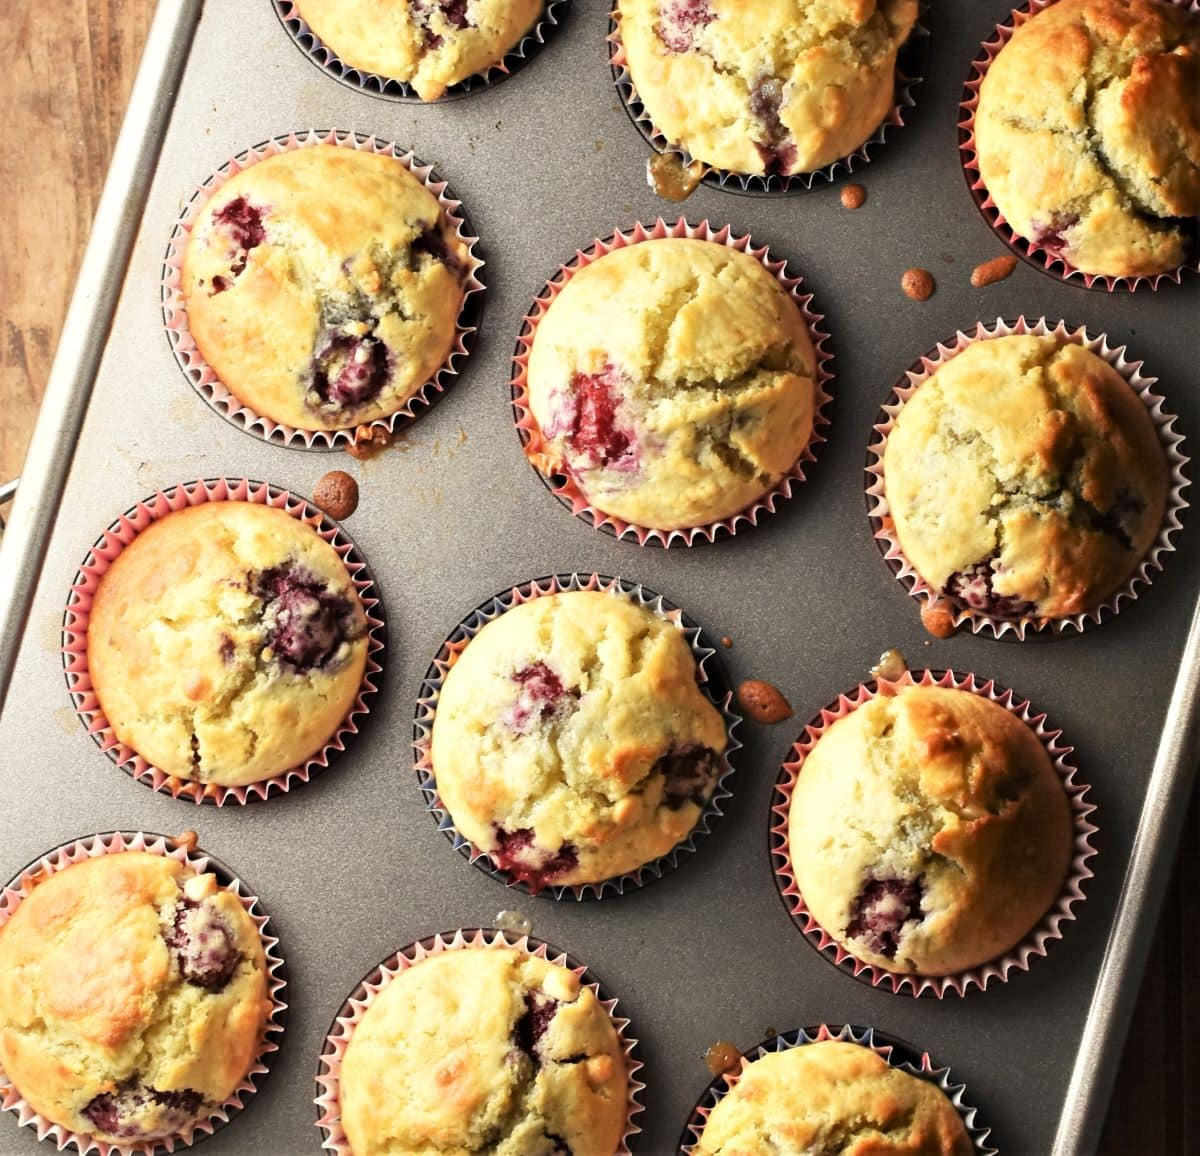 Top down view of 12 raspberry muffins inside muffin tin.